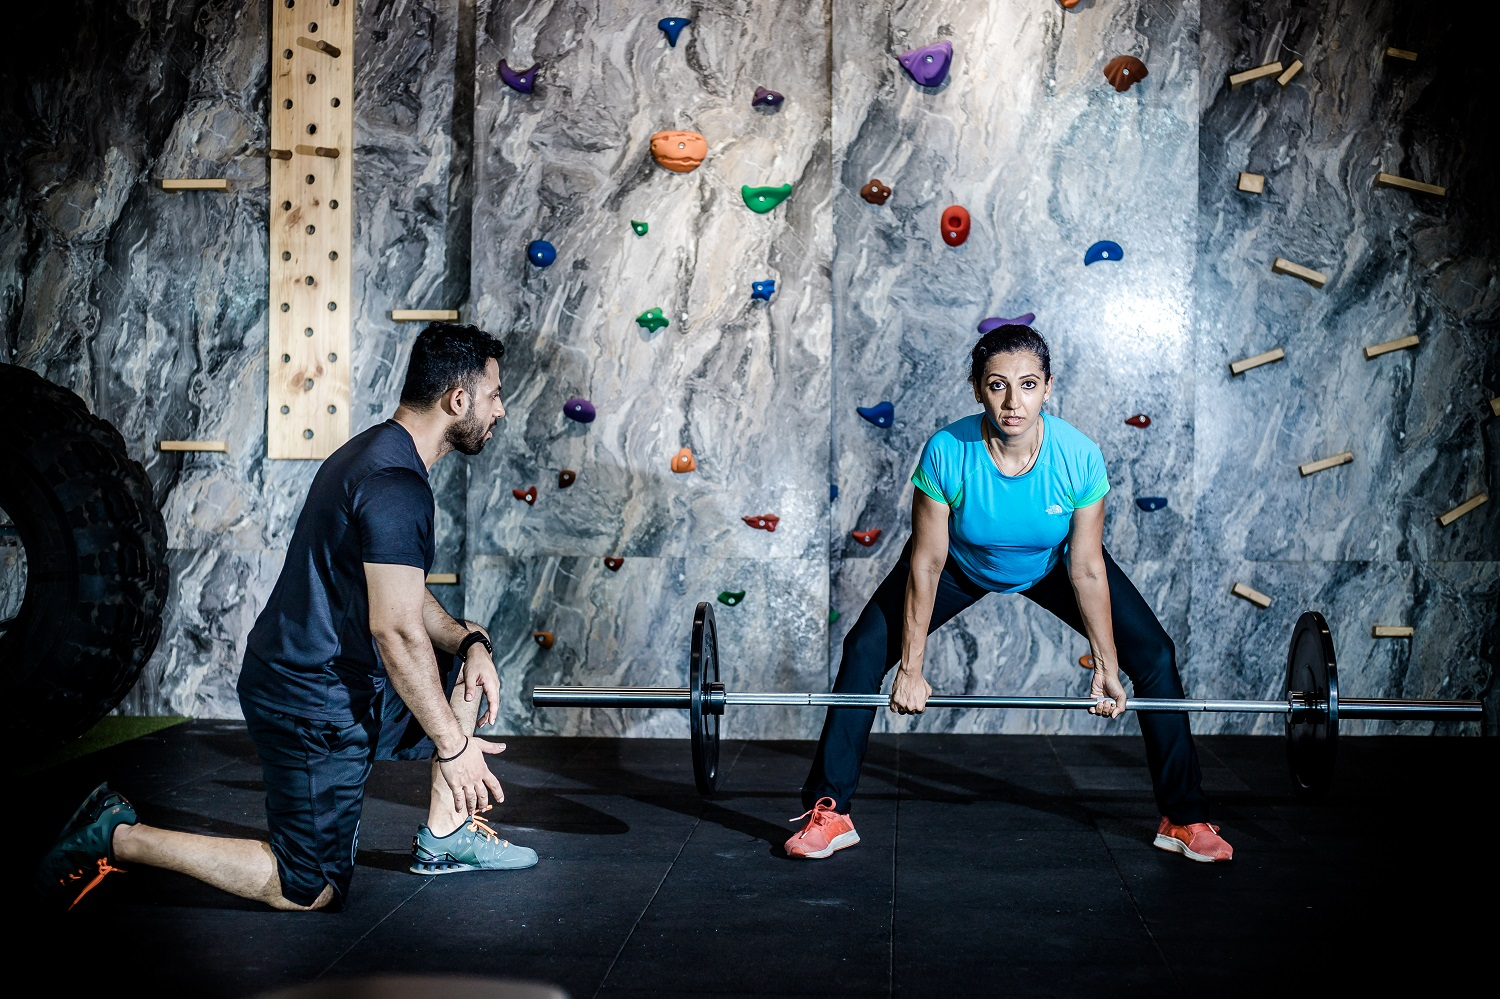 Interview: My Journey From a Fitness Trainer to Become an Entrepreneur